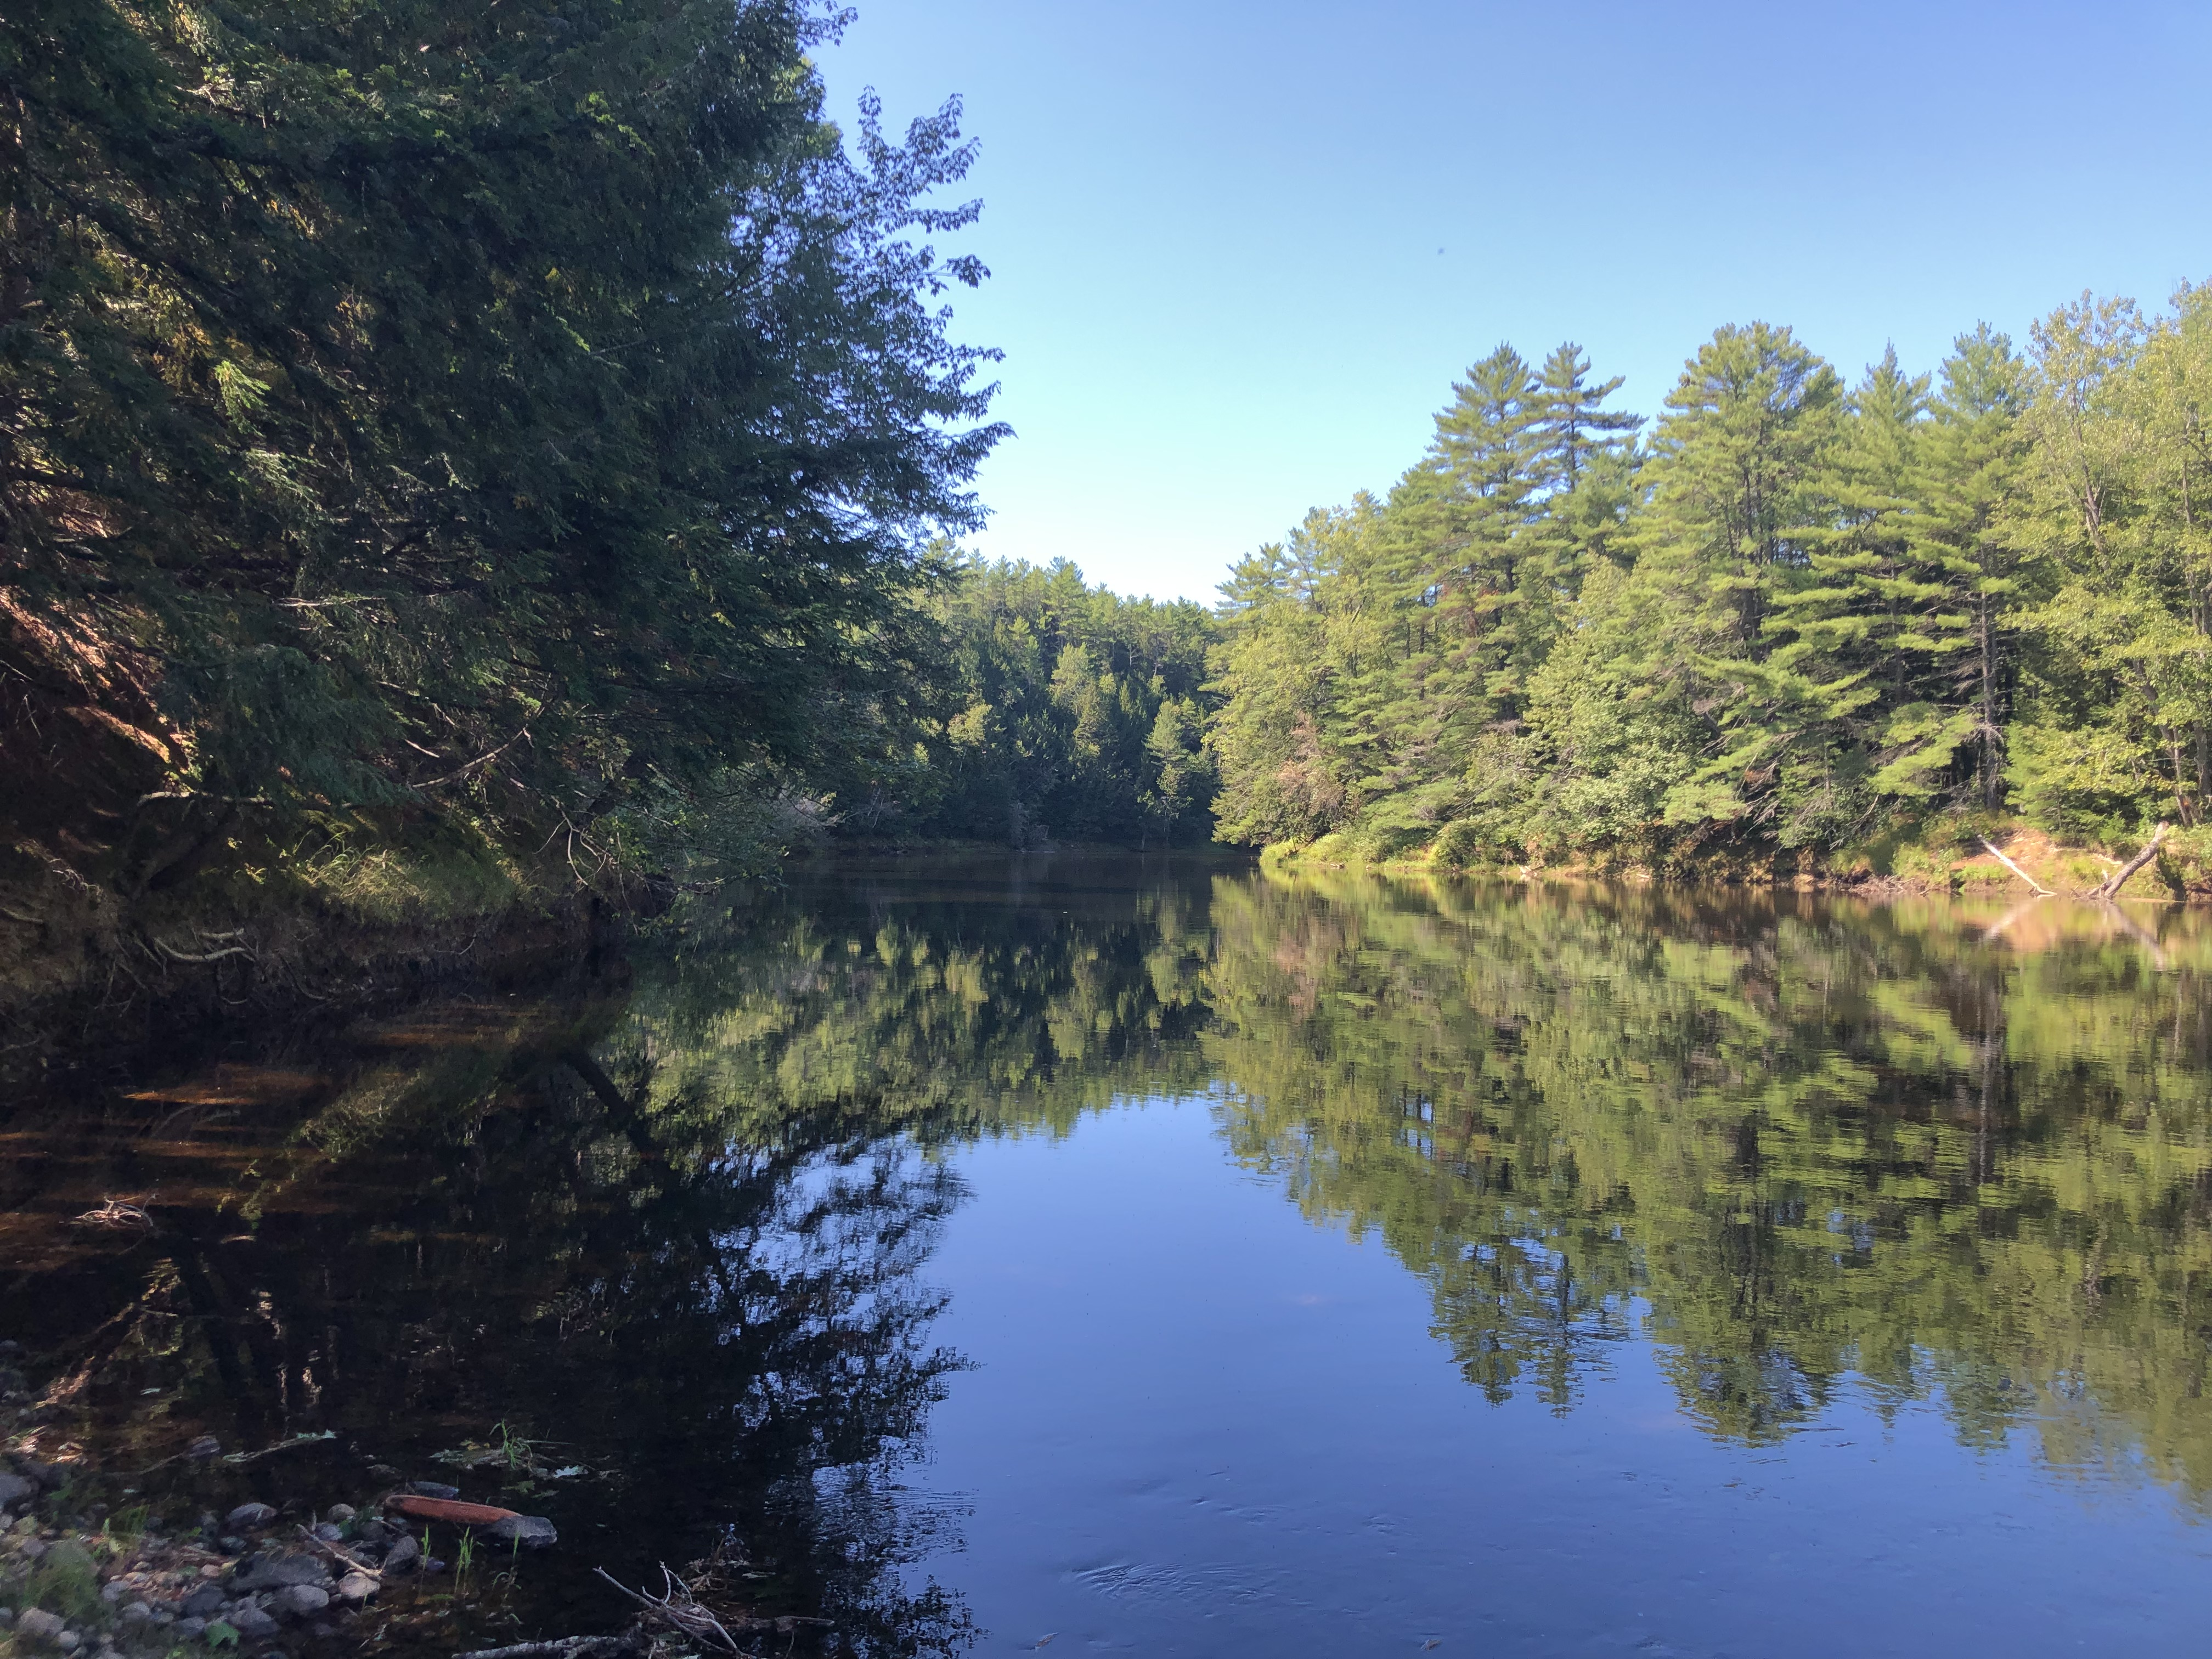 21 Acres for sale on Saco River Hiram Maine